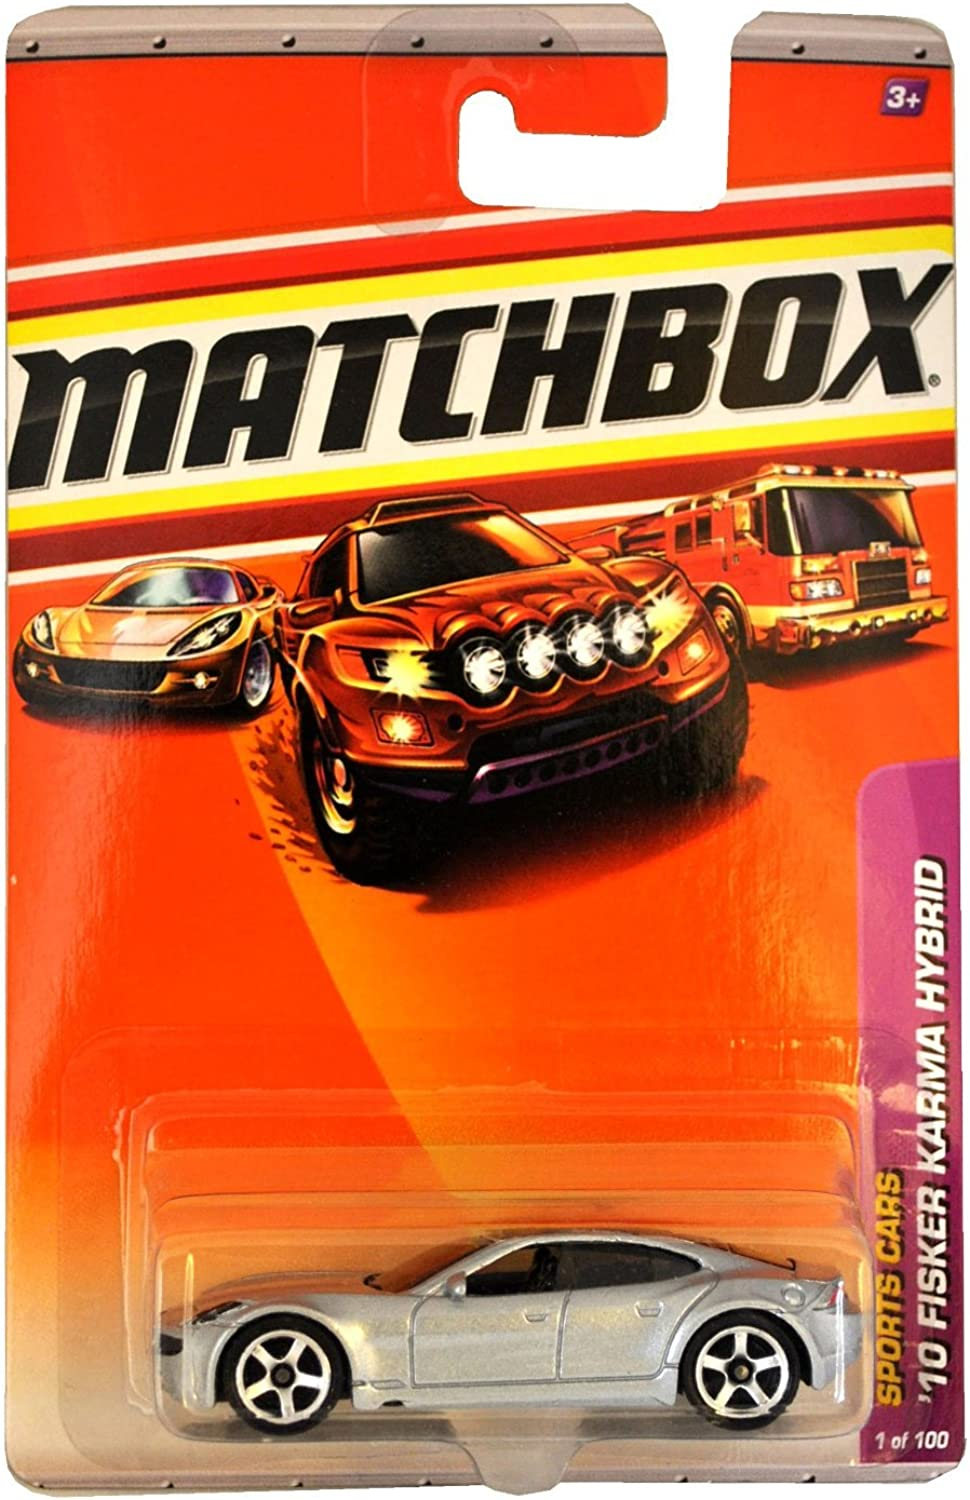 Matchbox 2010-1 100 Sports Cars '10 Fisker Karma Hybrid Silber 1 64 Scale B004VPA7G2 Internationale Wahl | Attraktiv Und Langlebig